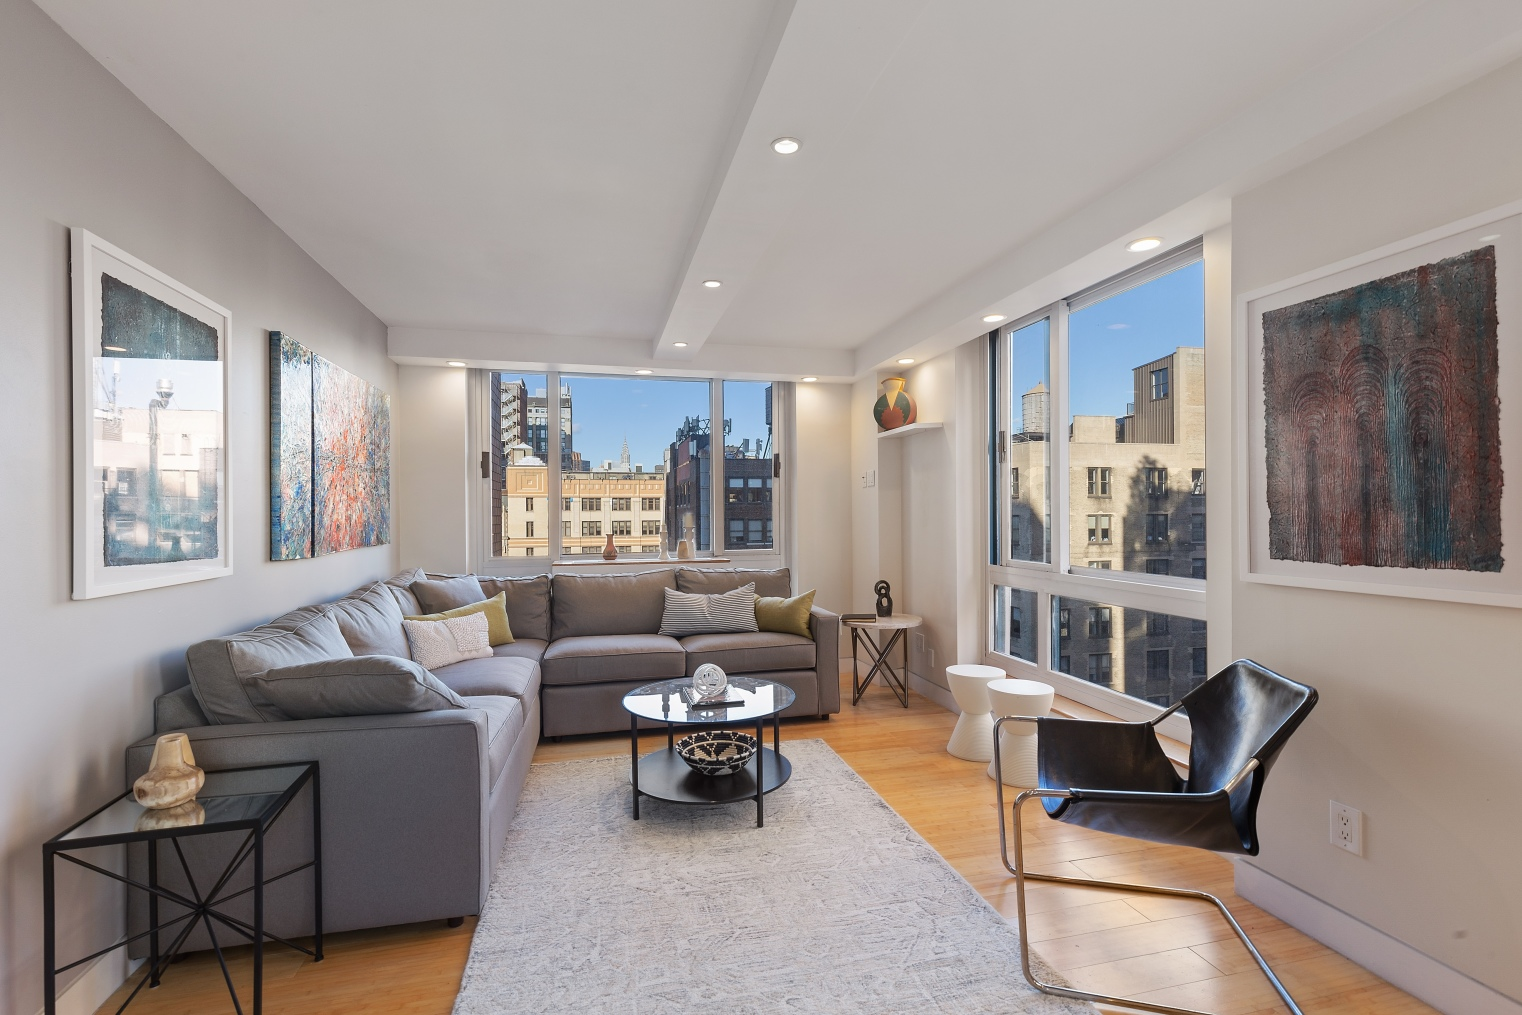 Apartment for sale at 1 Irving Place, Apt P-14FG